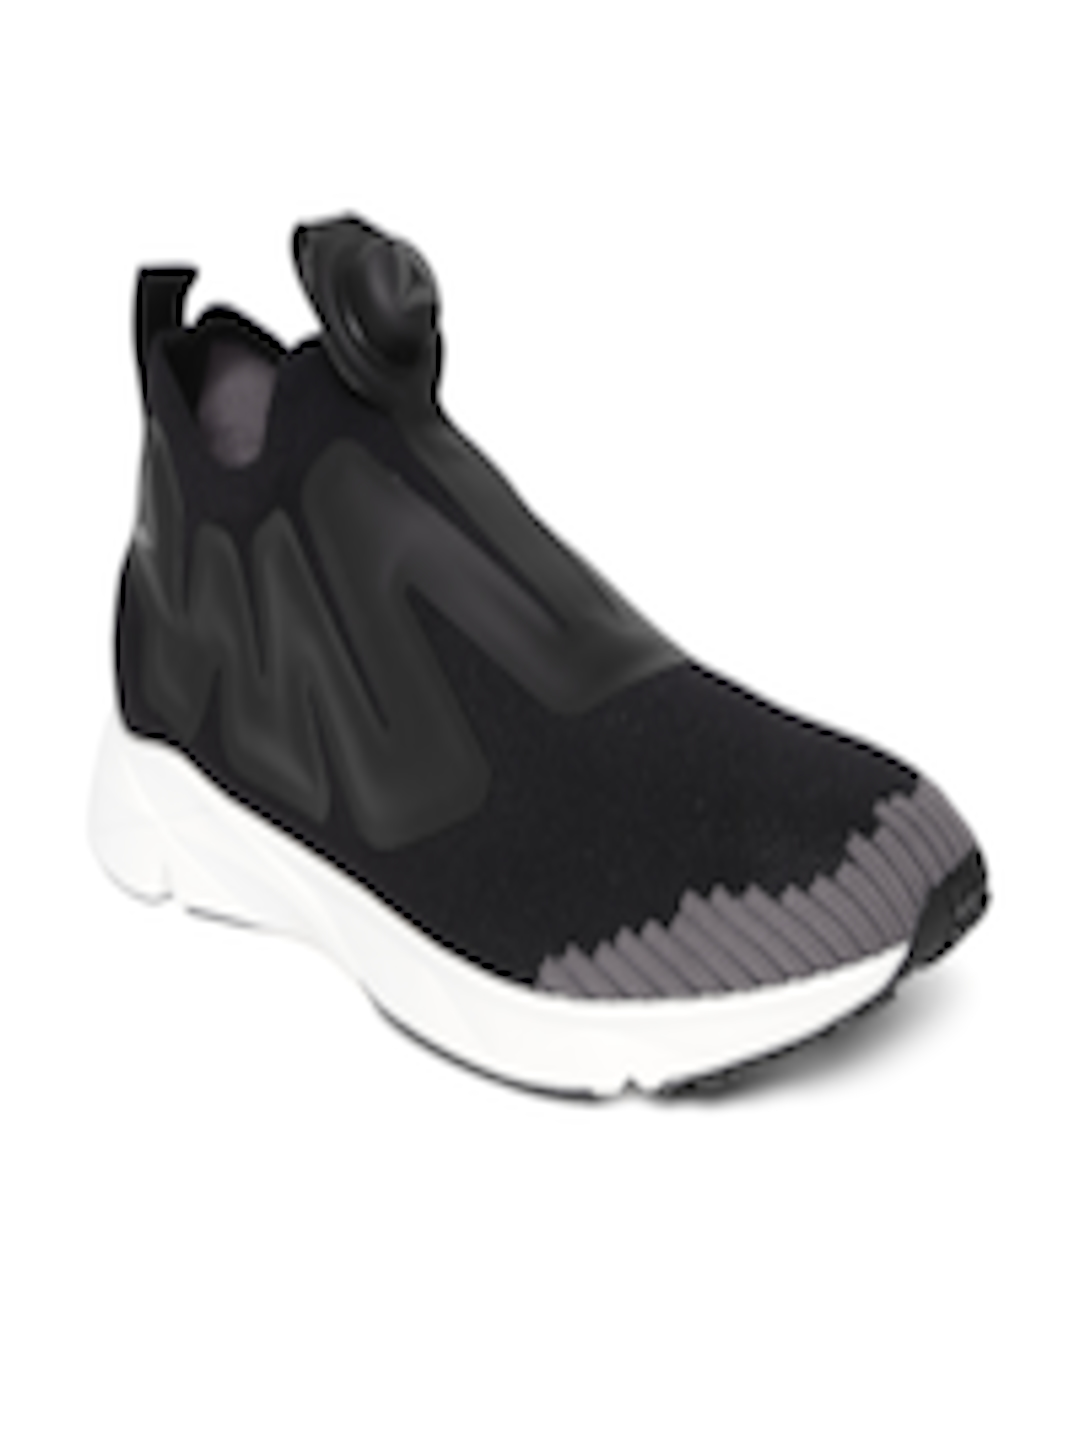 Buy Reebok Unisex Black Pump Supreme ULTK Running Shoes - Sports Shoes for  Unisex 2436370  1b1bc1c12